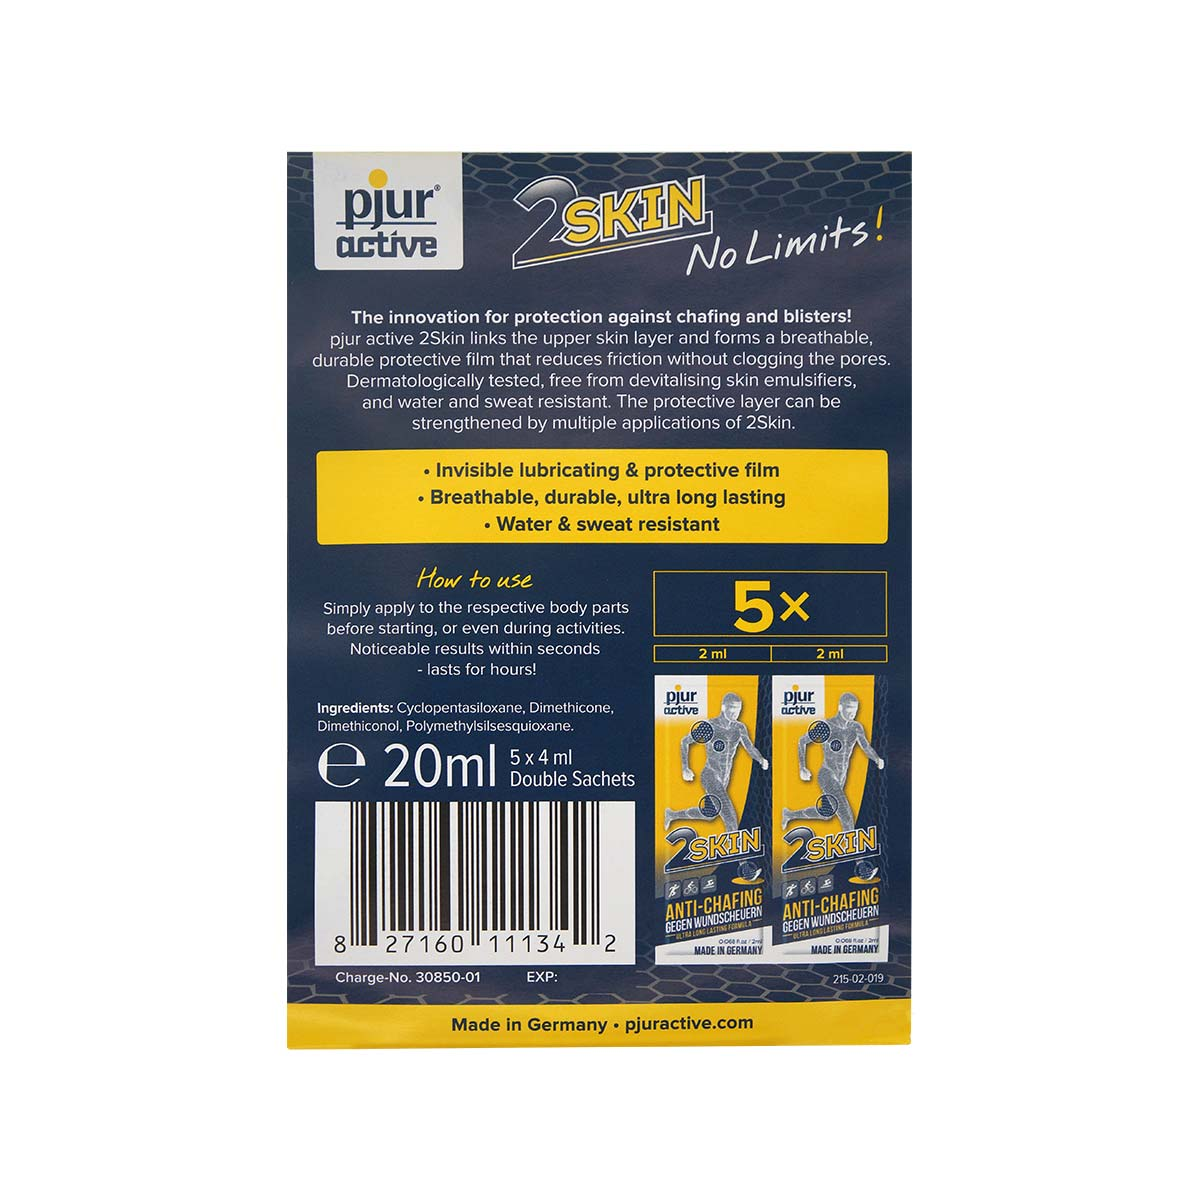 pjuractive 2skin ANTI-CHAFING GEL - 2 x 2ml double sachet (5pack)